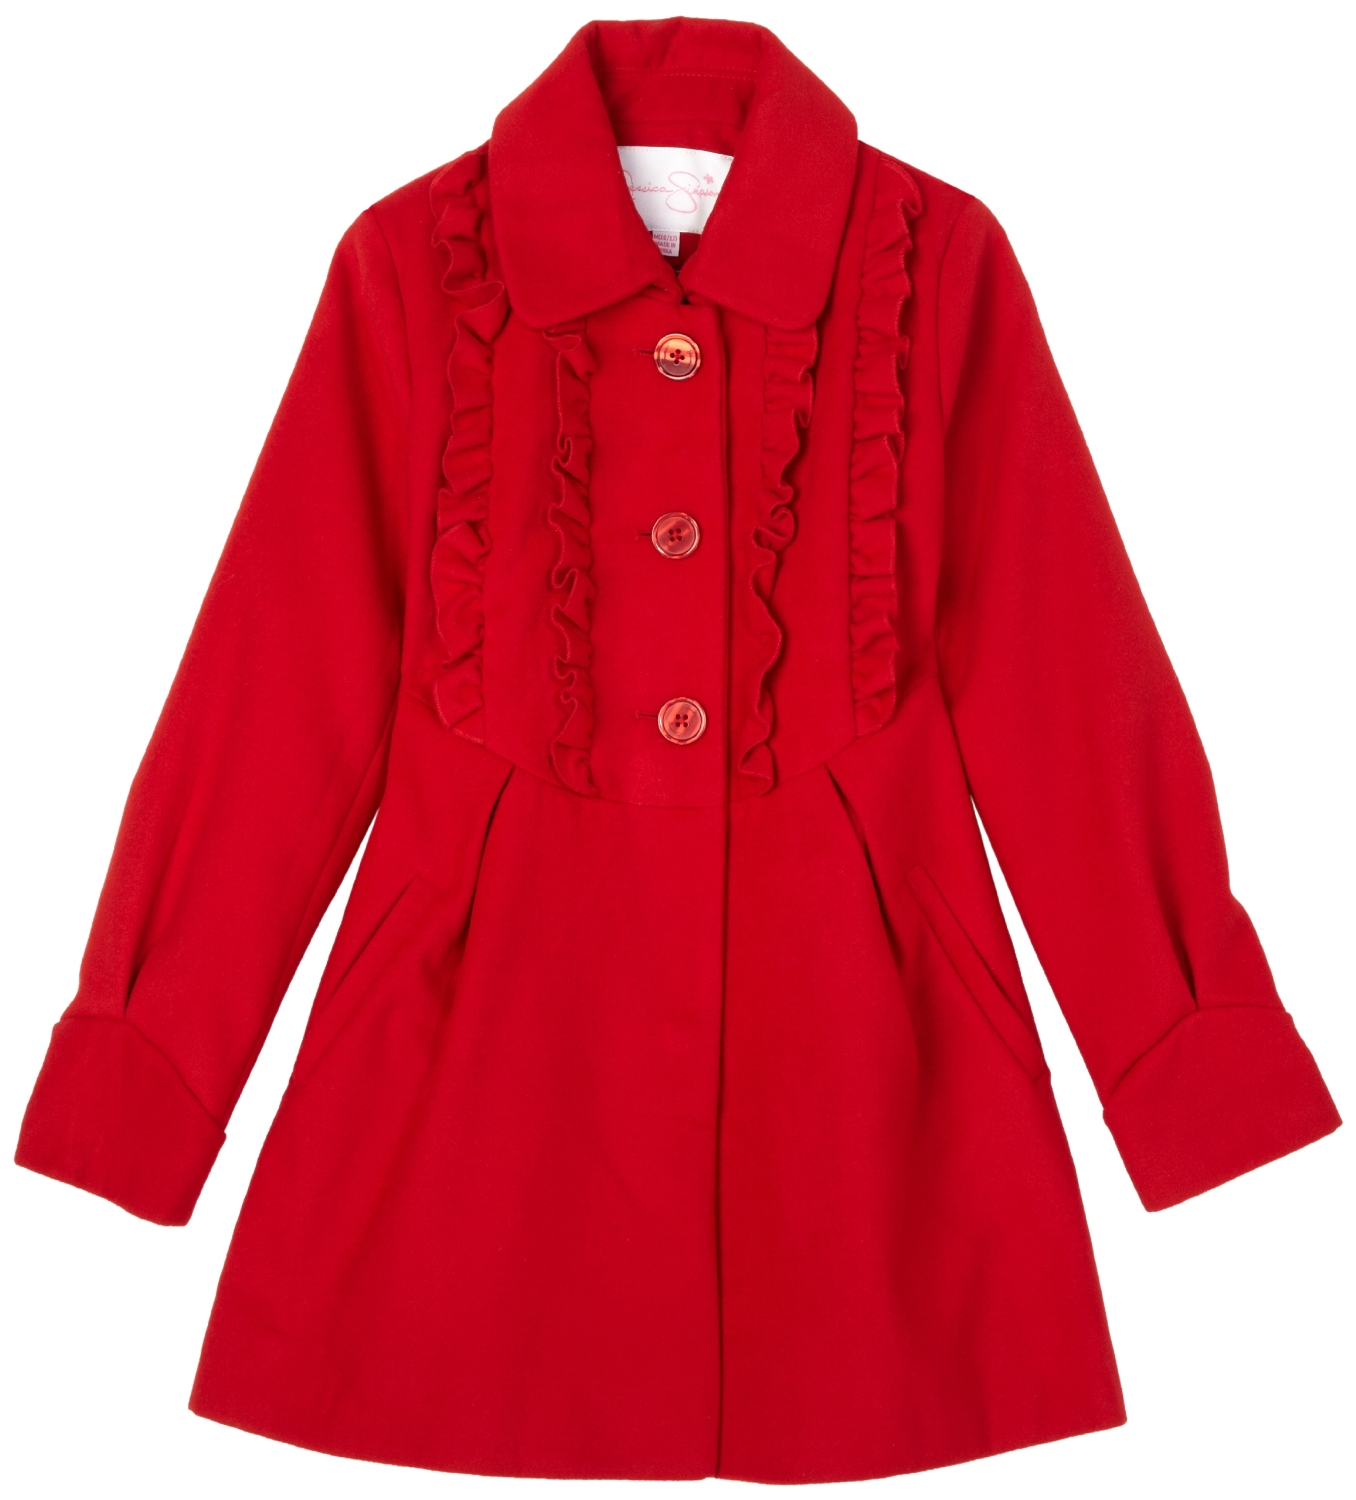 Kids Winter Coats Store: Kids Winter Coats By Jessica Simpson For ...